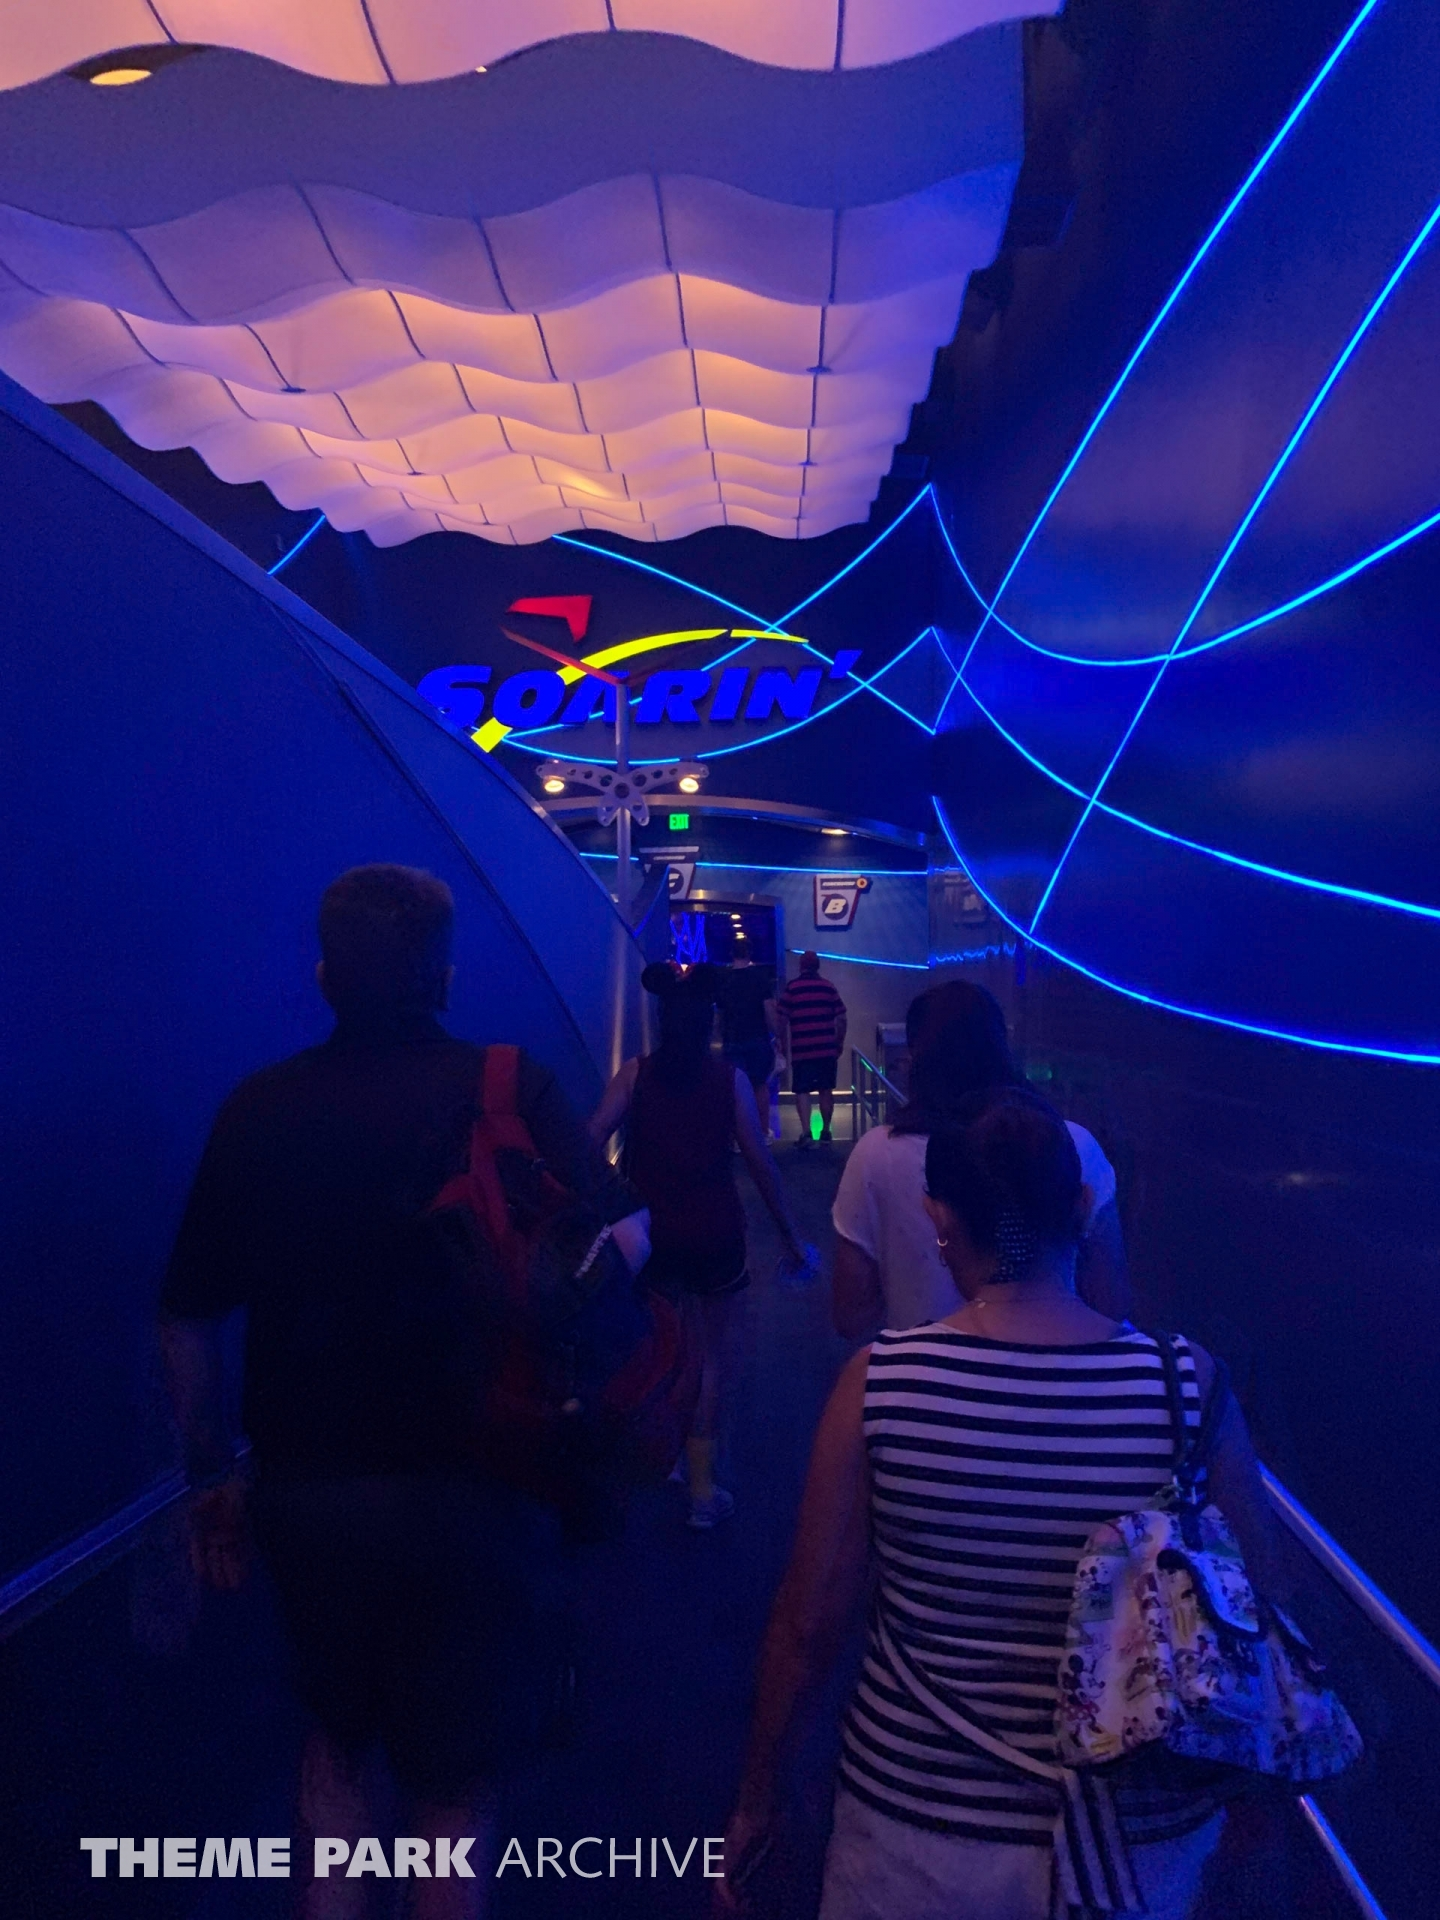 Soarin' at EPCOT